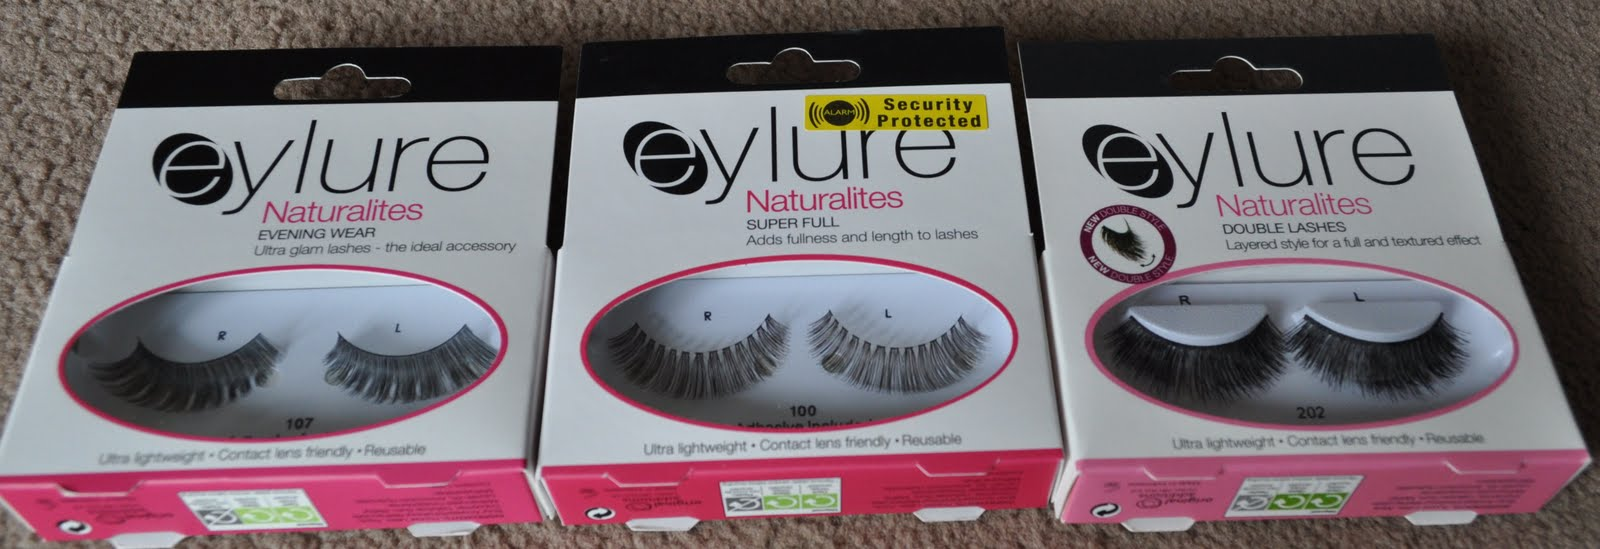 c63d9d8ce8b The styles 100 and 107 are evening wear and super full styles but are very  natural styles, the 202's are massive in your face double lashes, these are  the ...